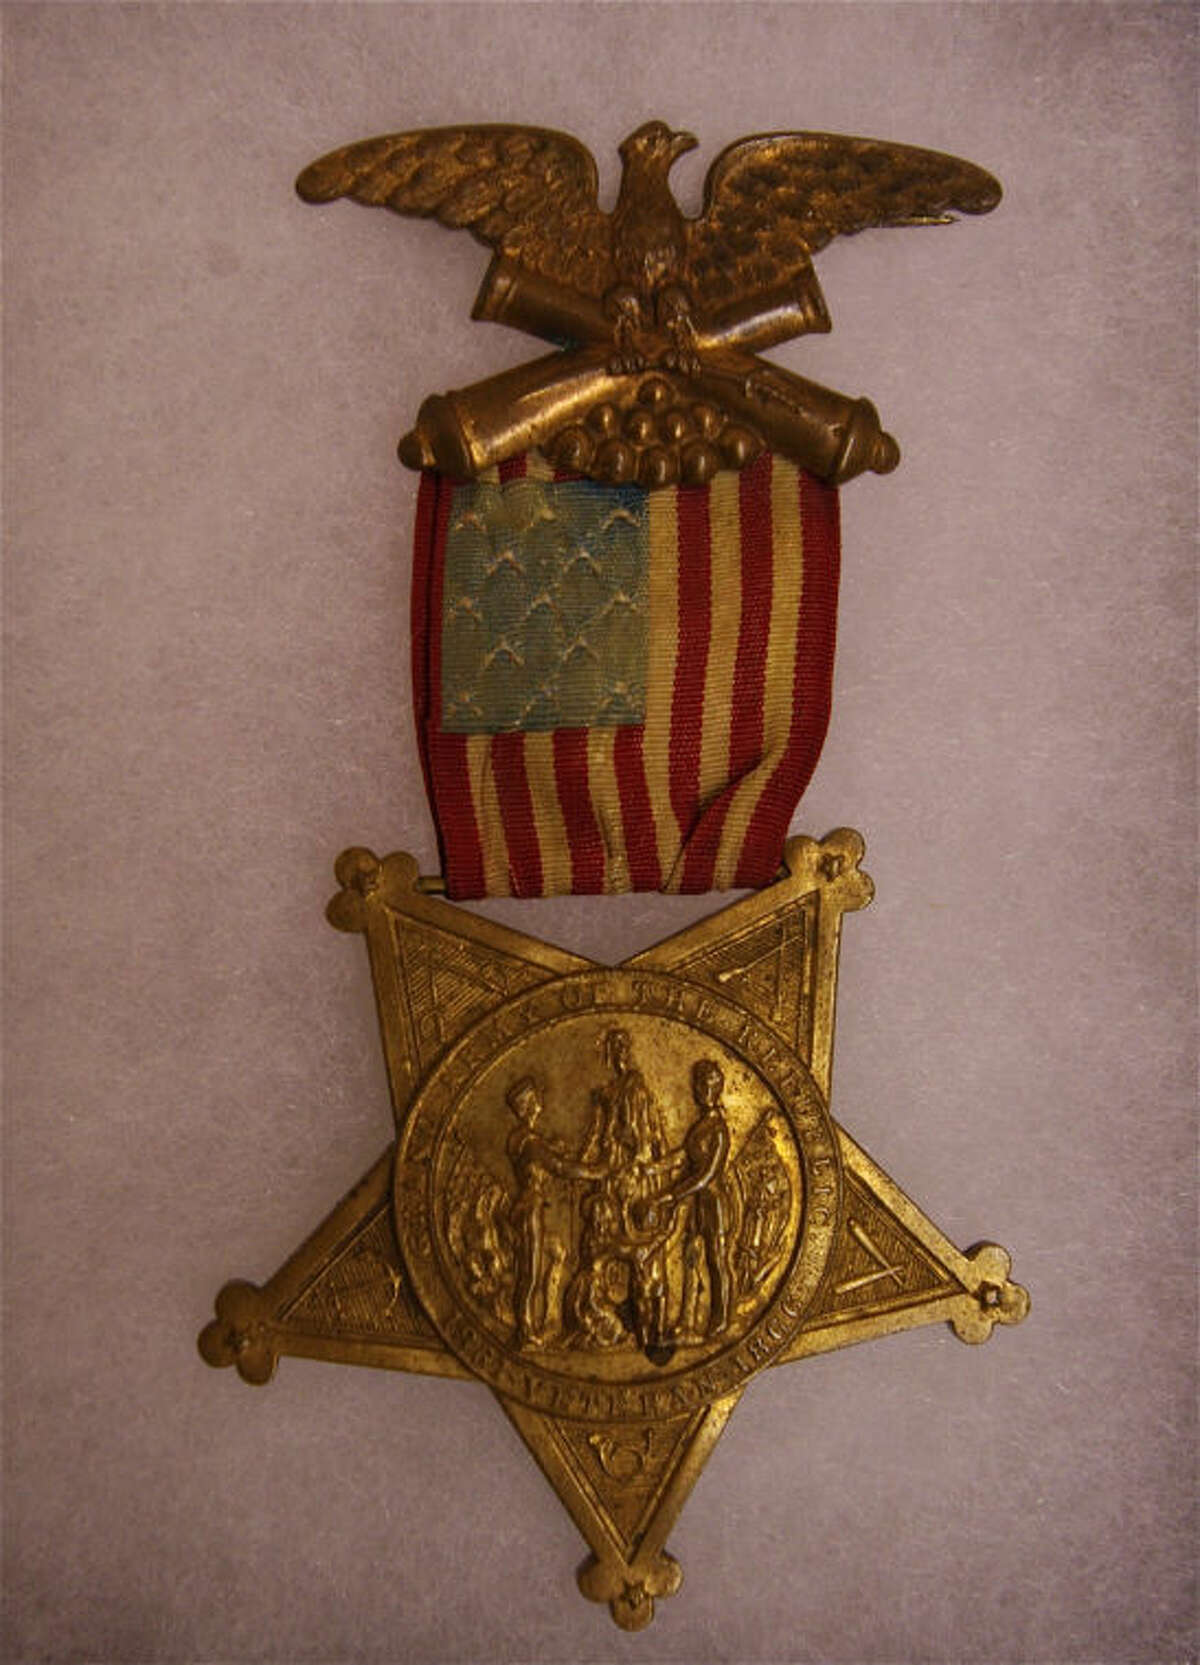 Stuart Frohm | for the Daily NewsA Midland resident is loaning this Grand Army of the Republic membership badge to the Midland County Historical Society for a Civil War exhibit. The Grand Army of the Republic had posts in Midland County.